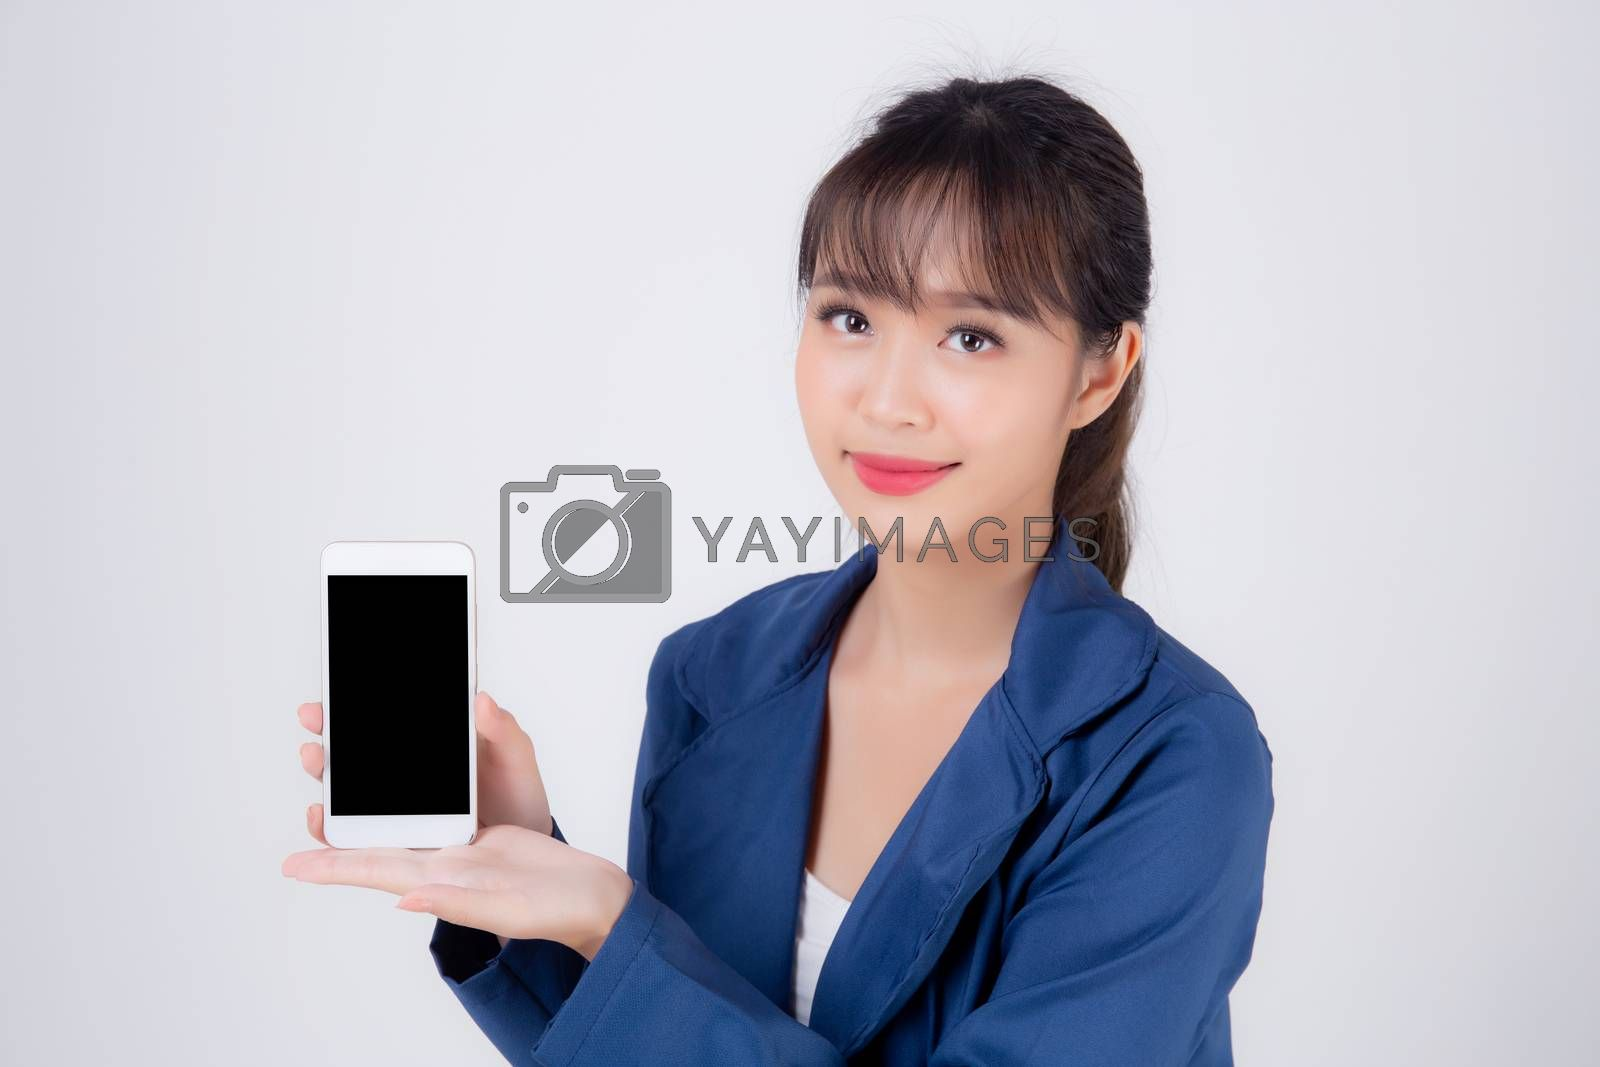 Beautiful portrait young business asian woman show blank smart mobile phone isolated on white background, businesswoman presenting smartphone for advertising, girl holding phone, communication concept.